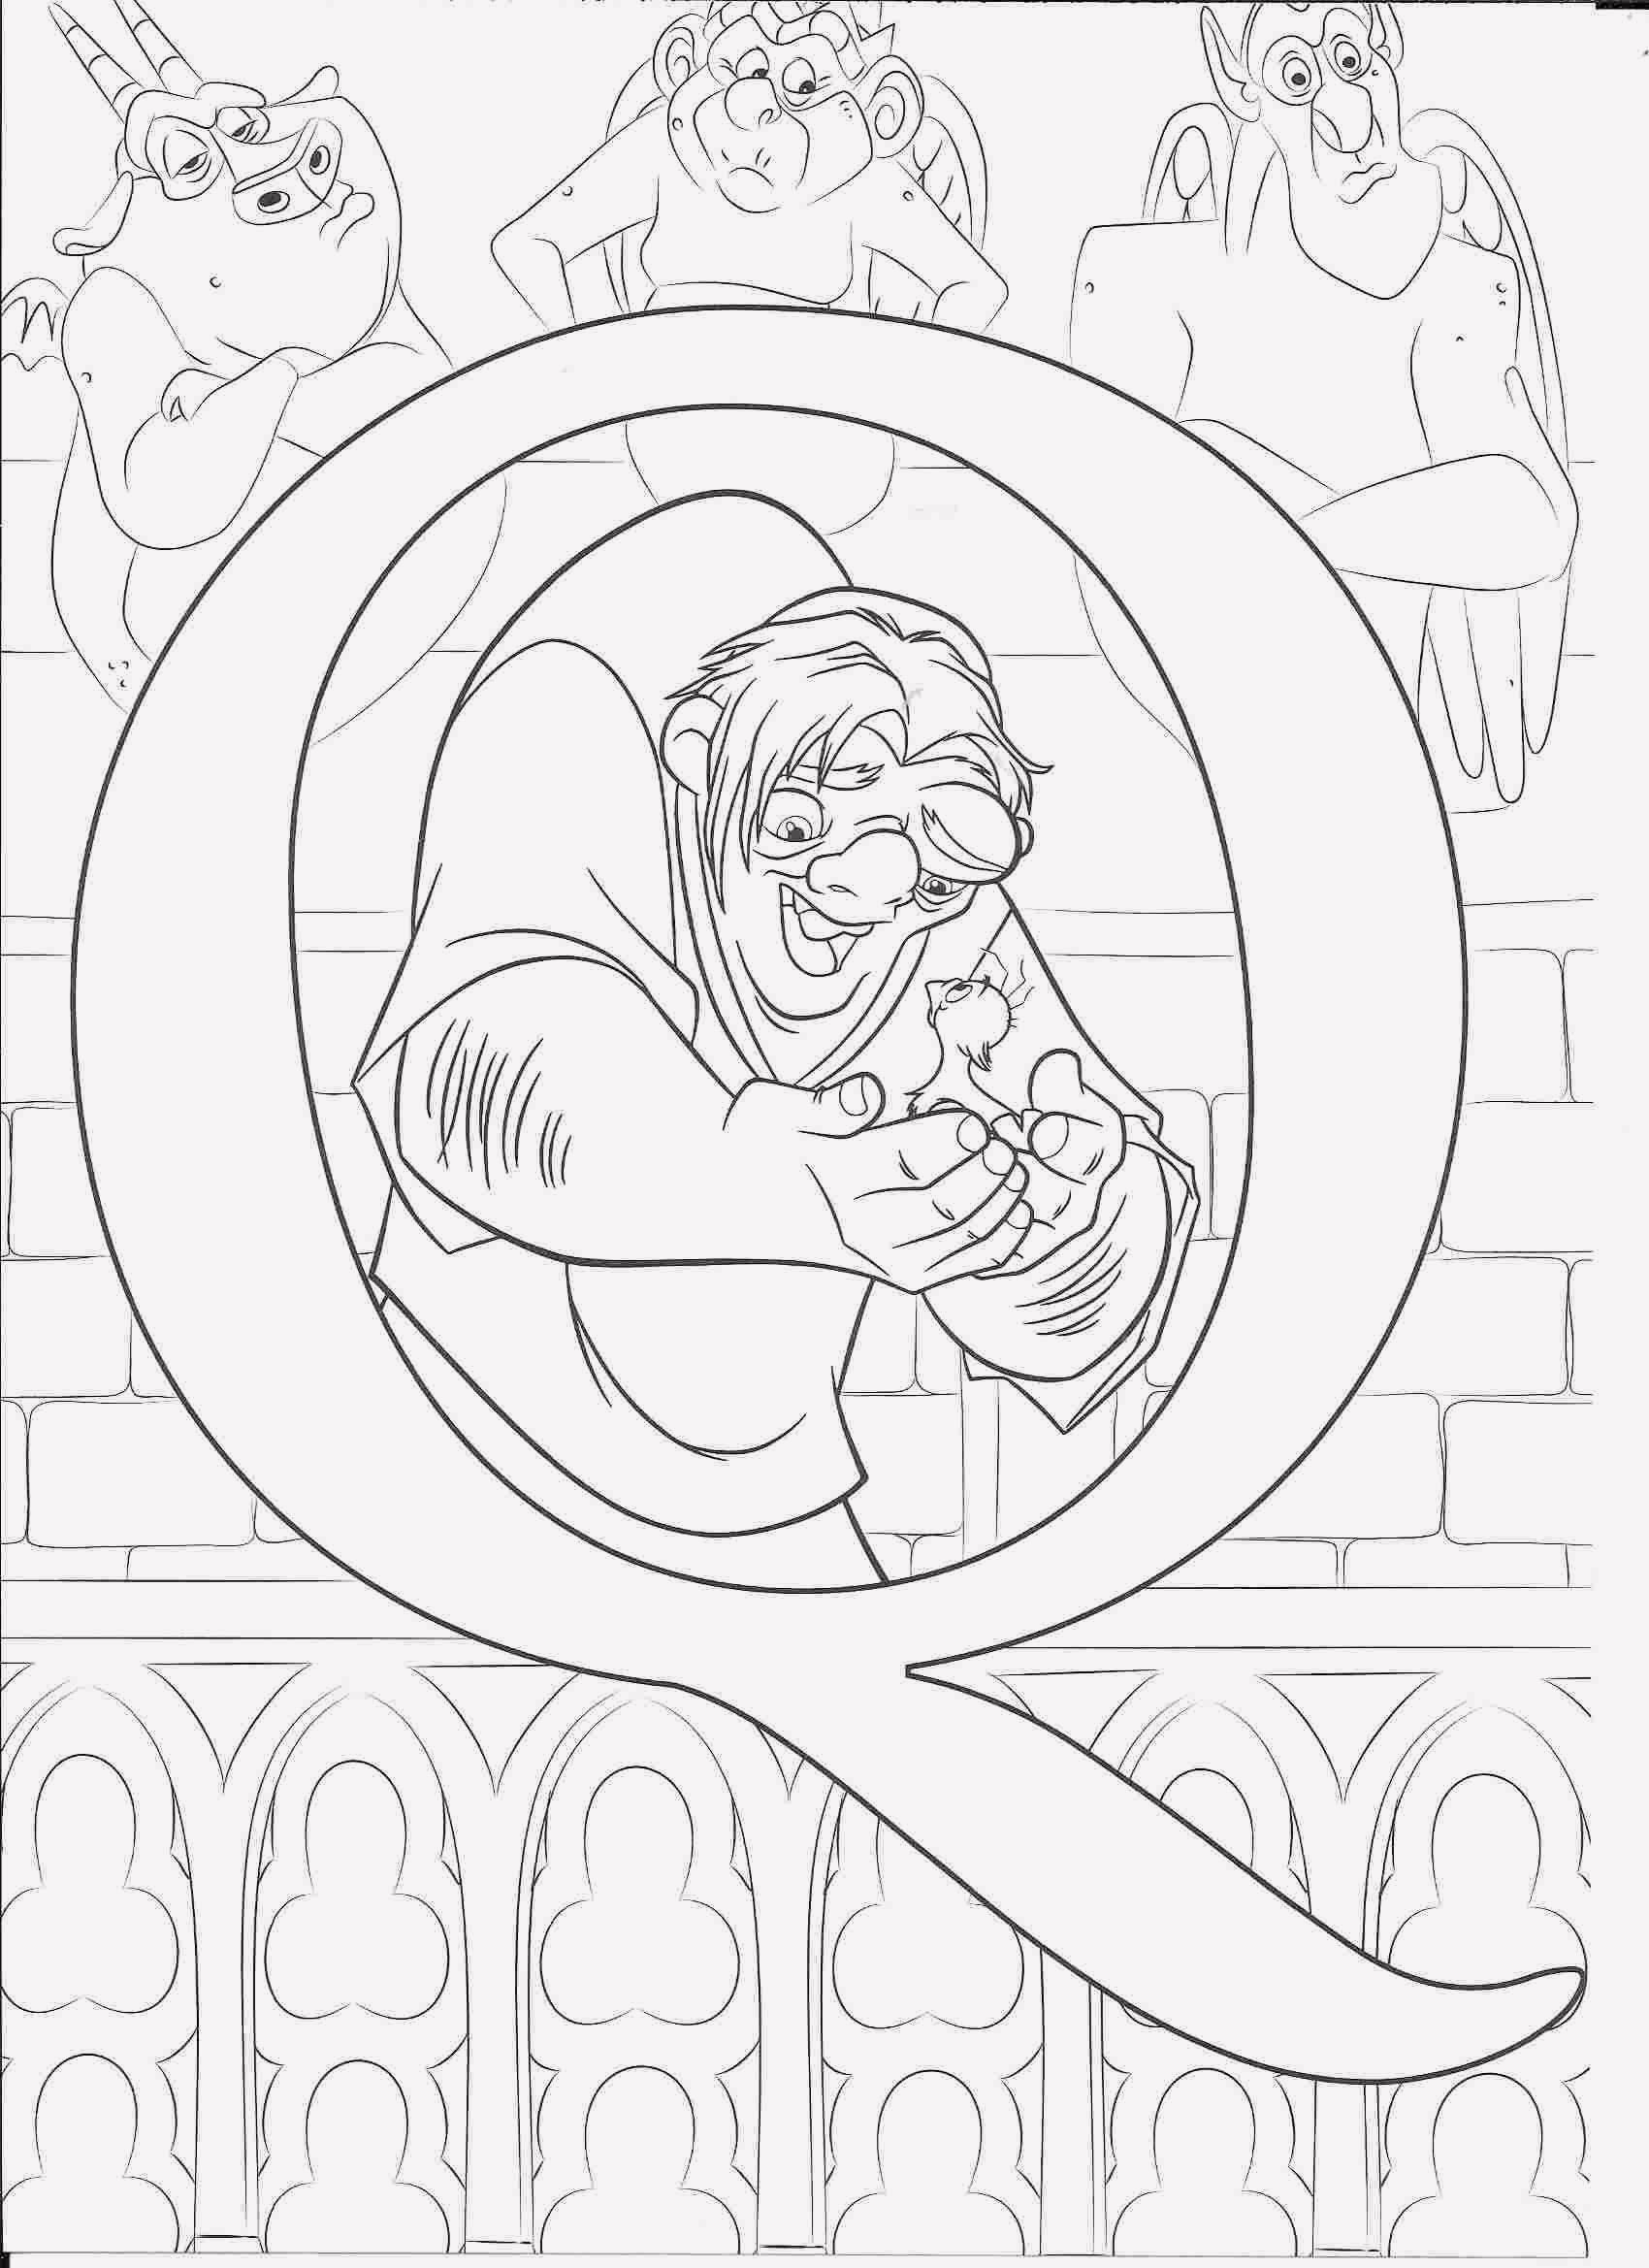 19 Disney Now Coloring Pages Disney Coloring Pages Abc Coloring Pages Abc Coloring